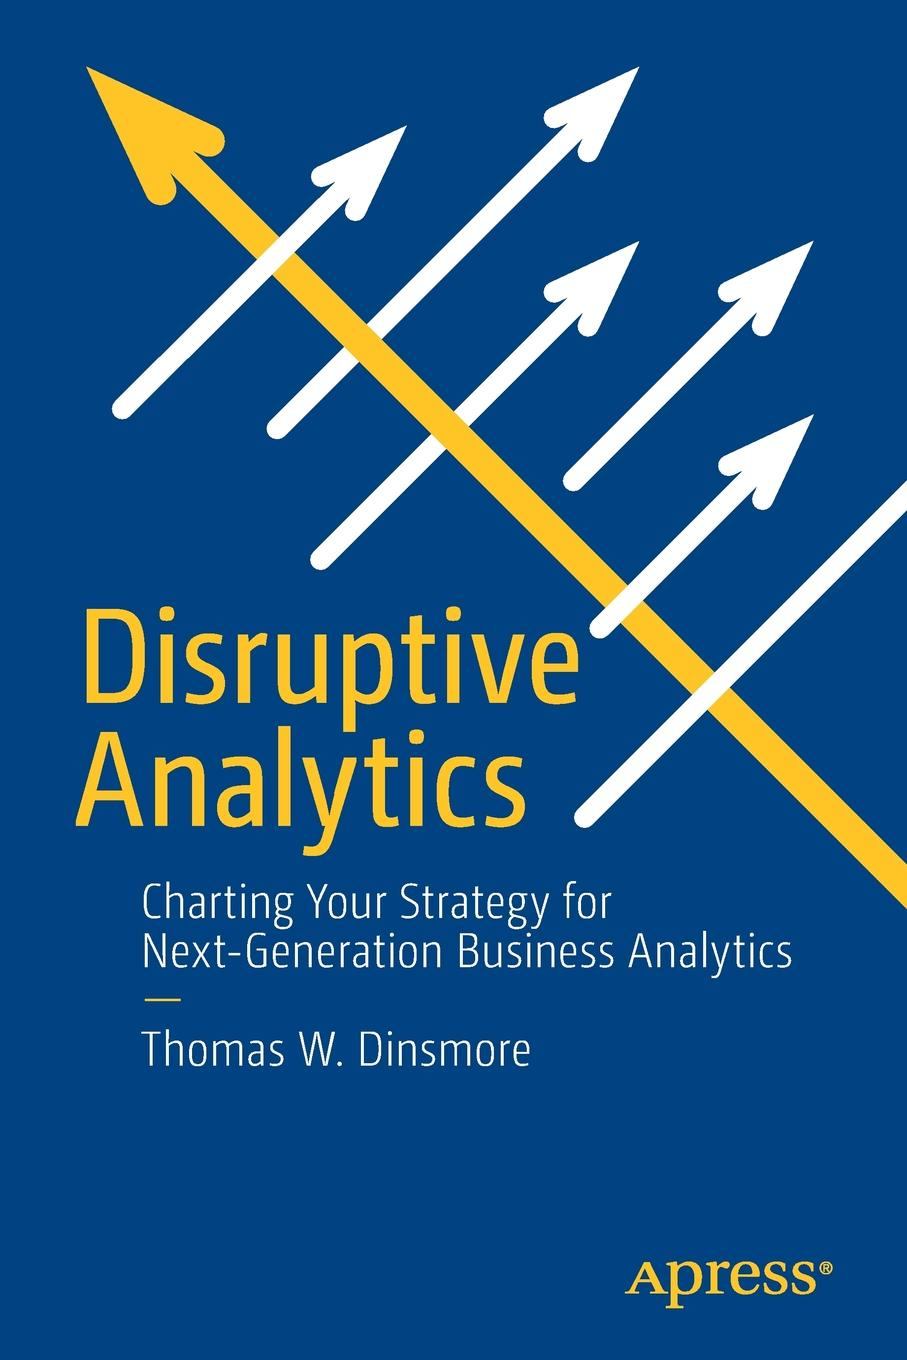 Thomas W. Dinsmore Disruptive Analytics. Charting Your Strategy for Next-Generation Business Analytics